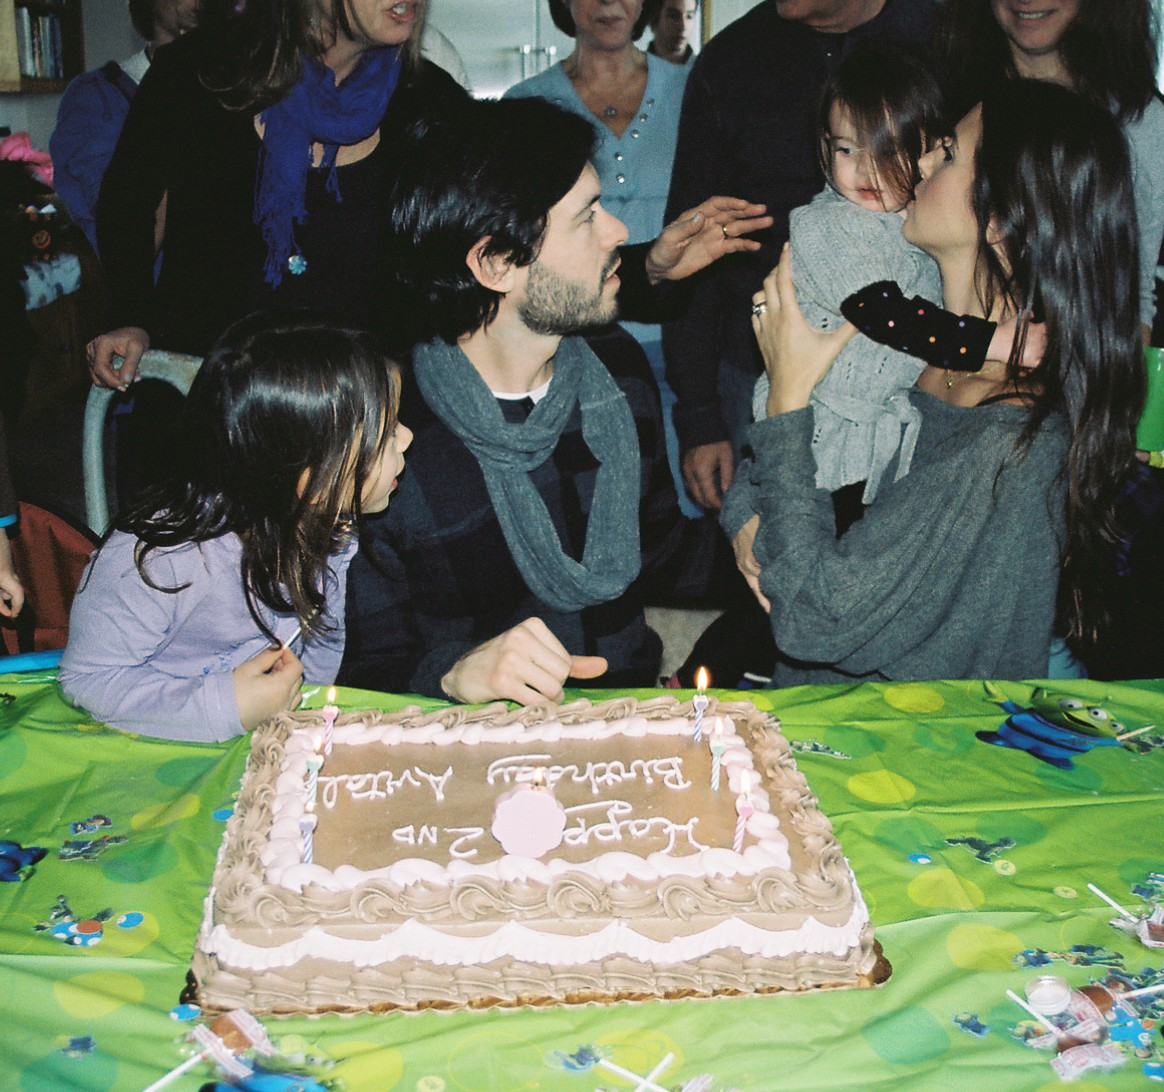 Avi's birthday cake was so delicious and totally vegan!